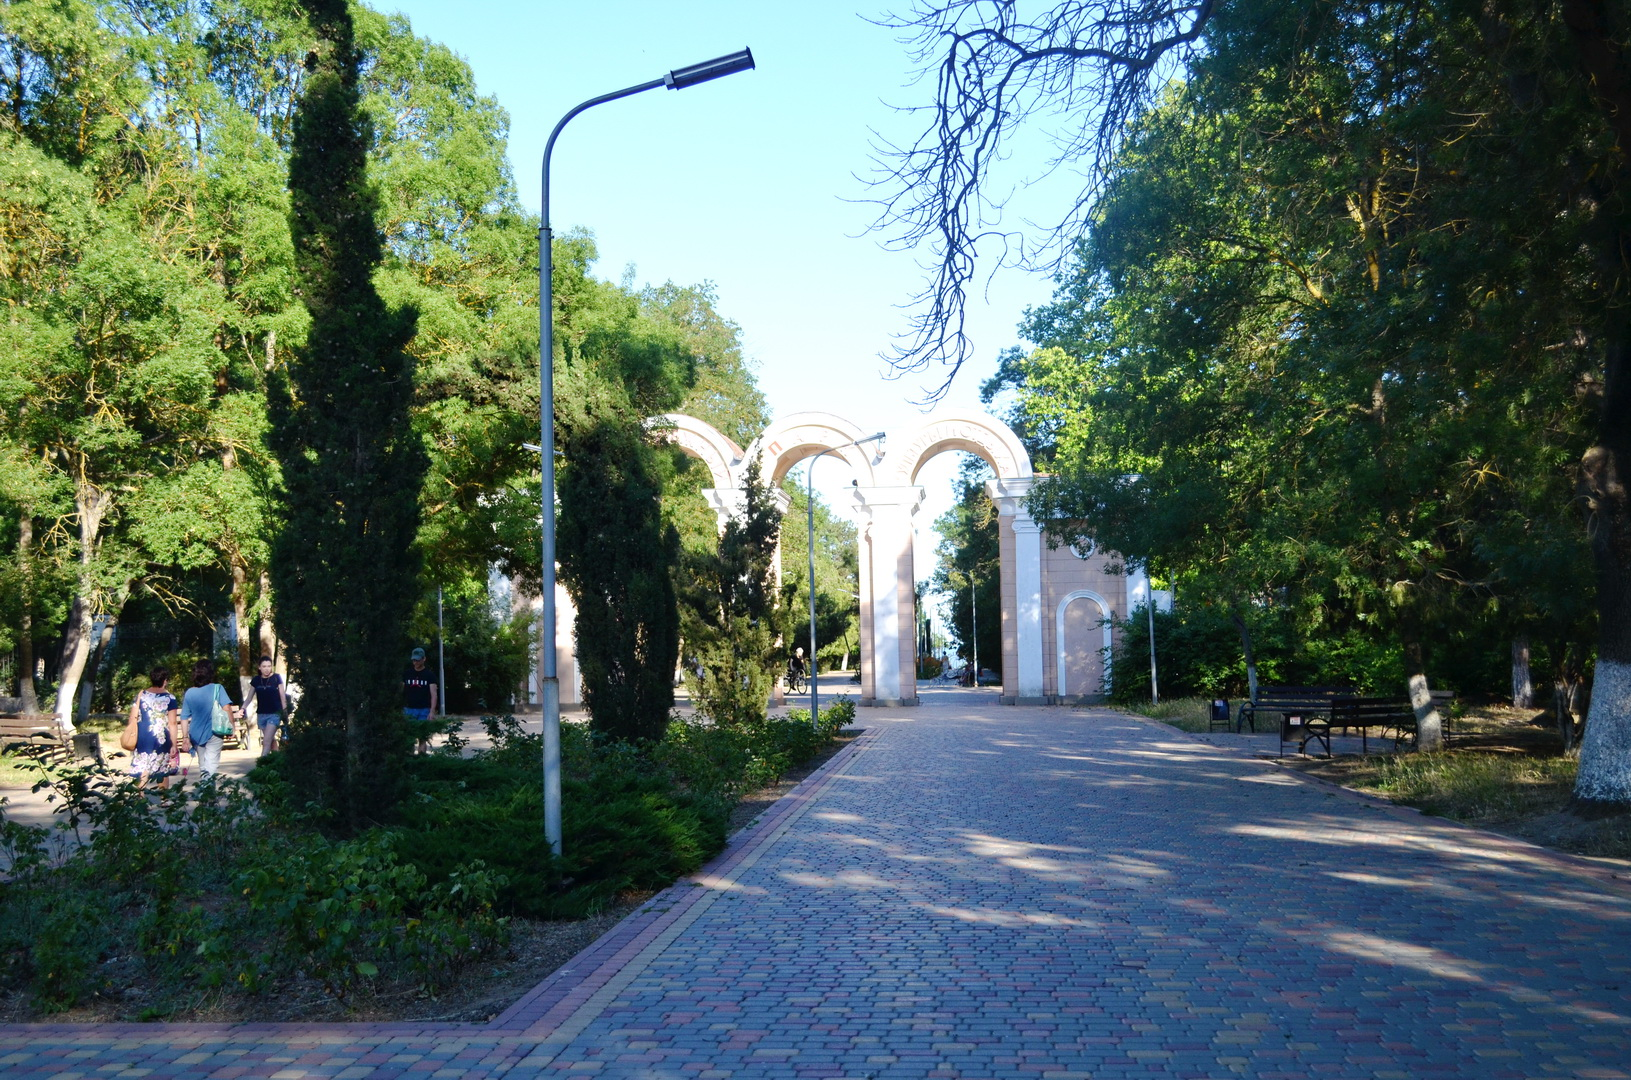 kerch arshincevo 26 06 2020 park 1